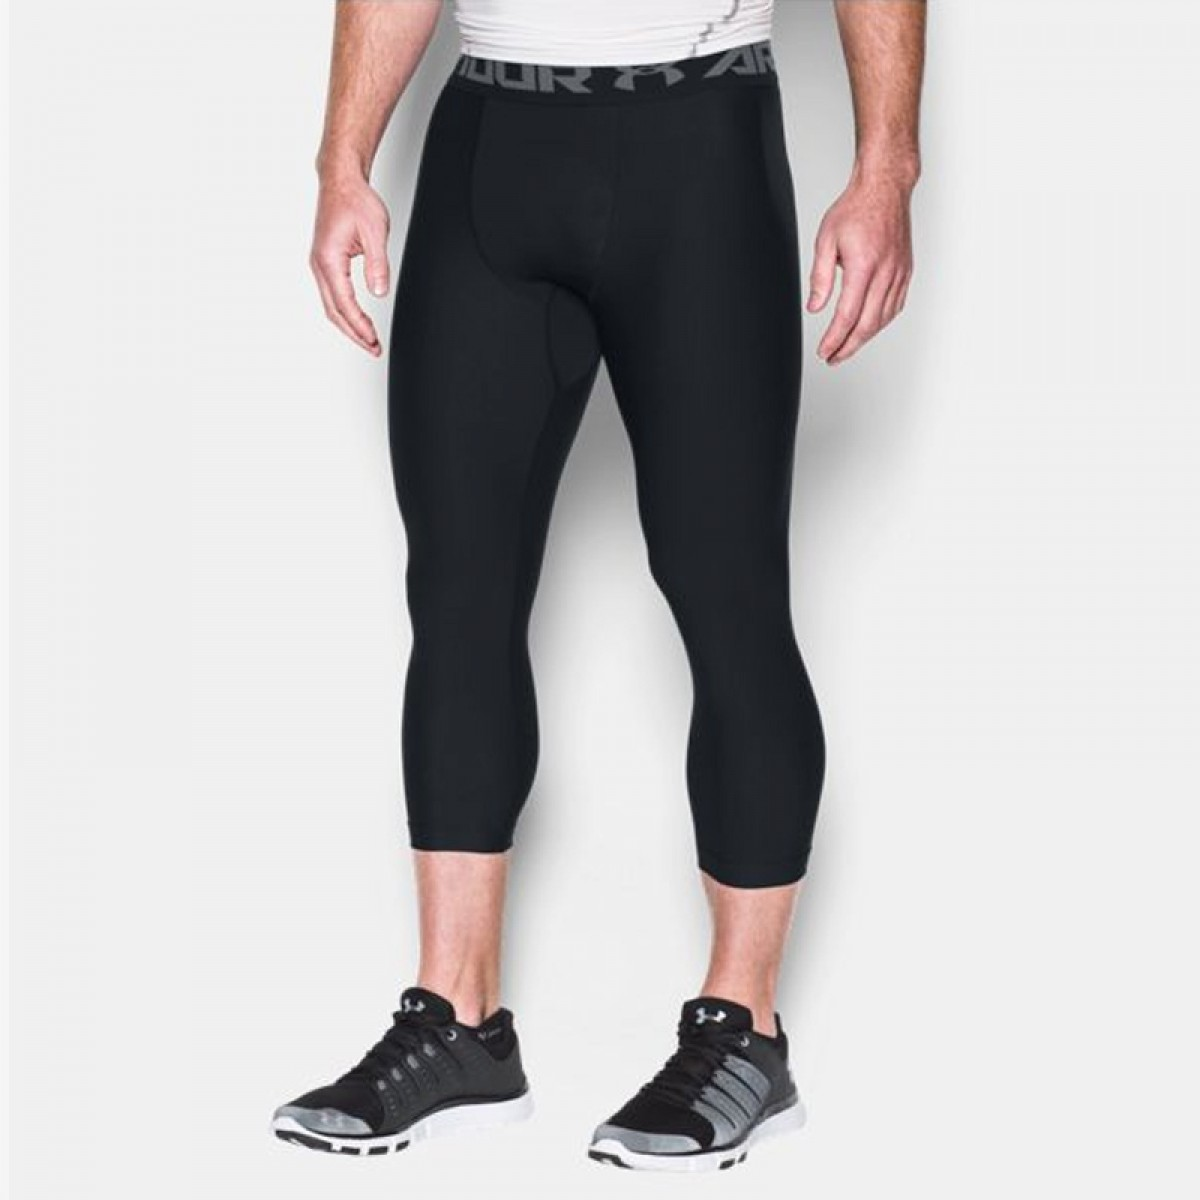 UA 2.0 Legging 3/4 'Black'